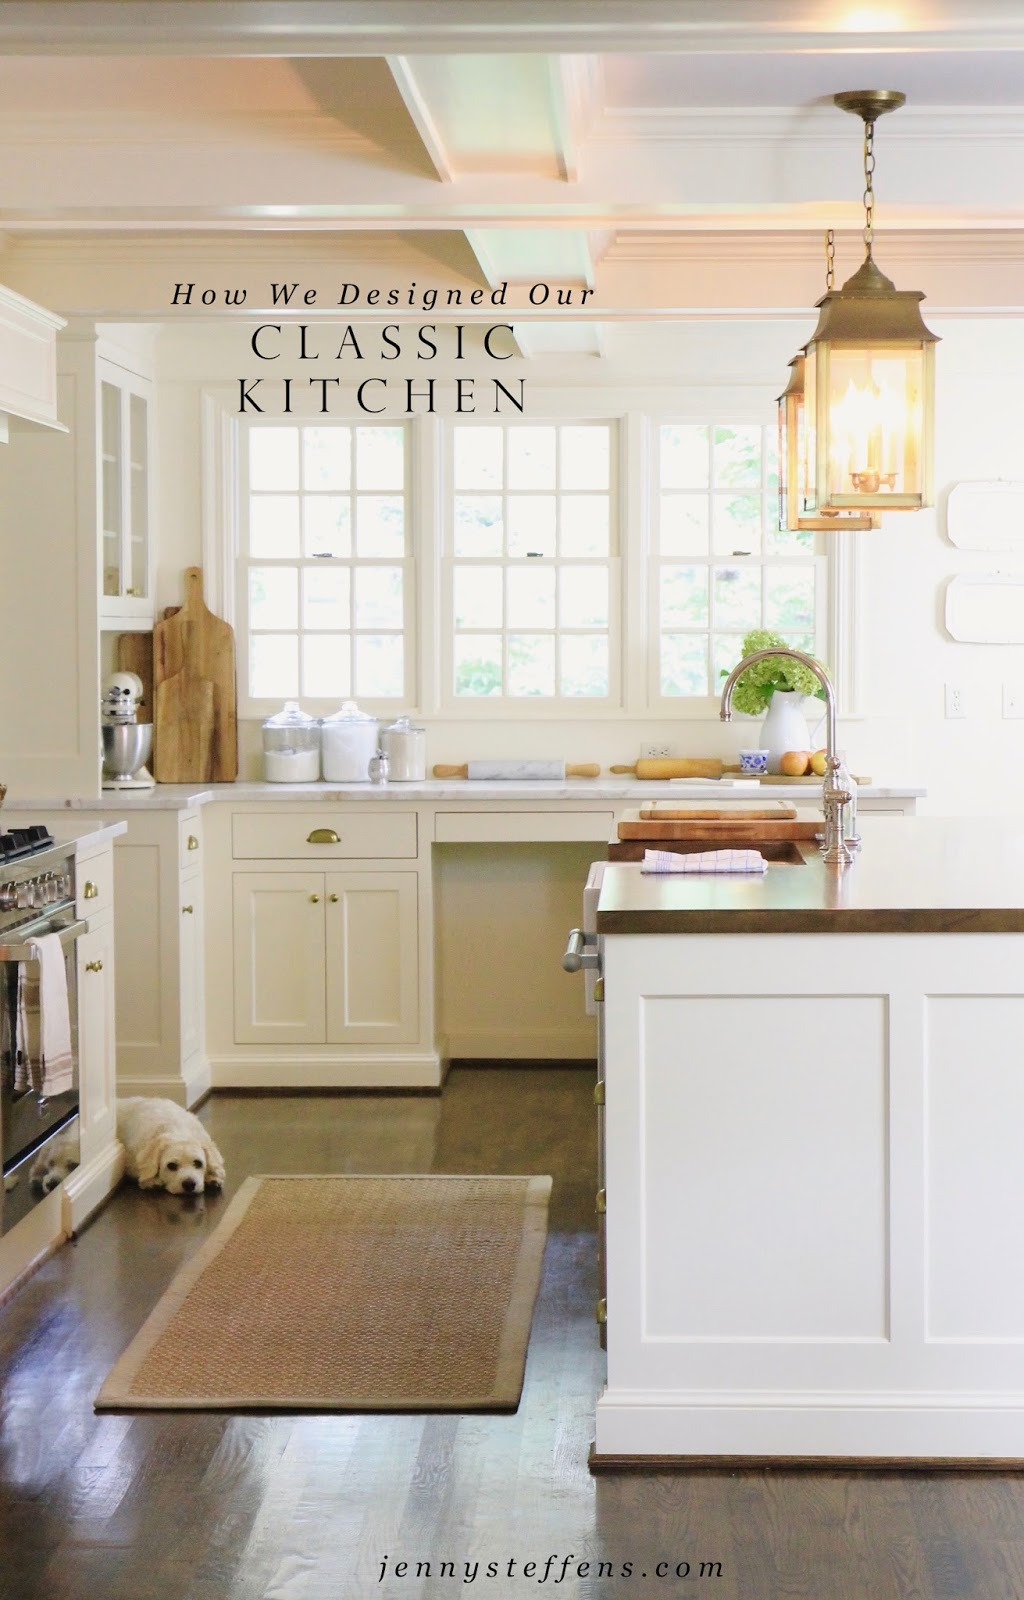 Jenny Steffens Hobick Our Classic White Kitchen Design Marble Countertops Wood Island Top